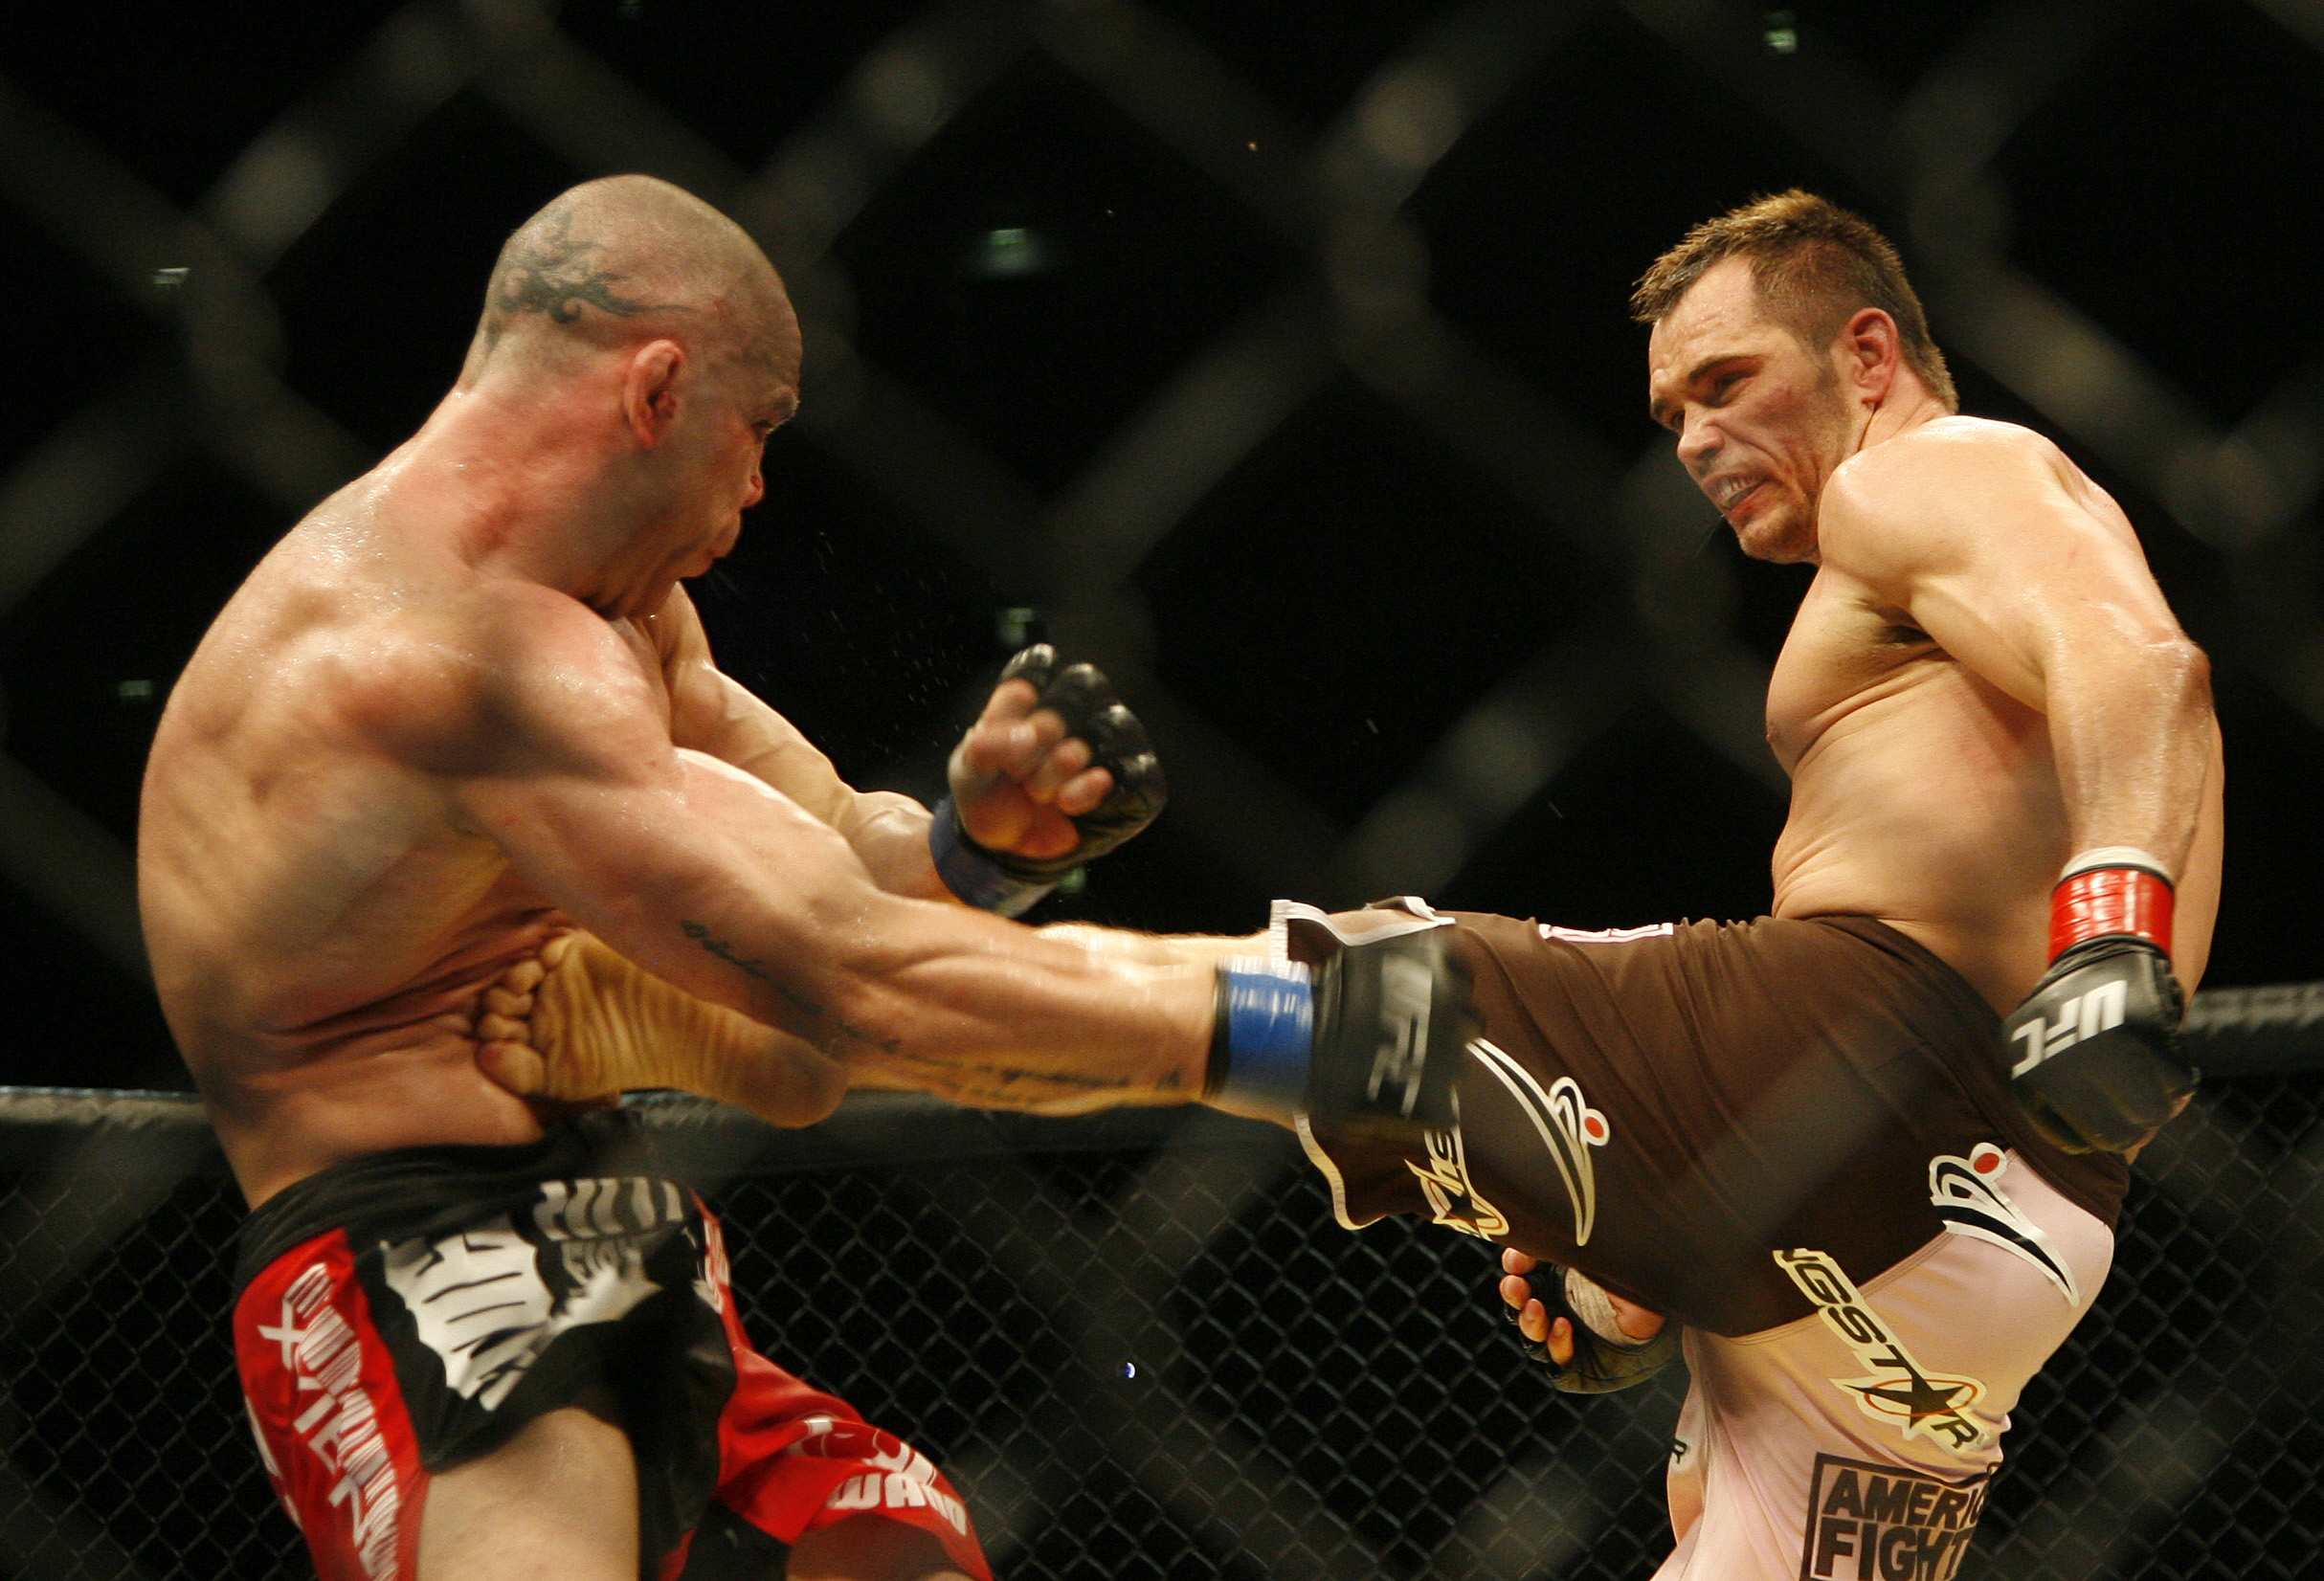 Silva Wanderlei from Brazil, left, fights against United States' Rich Franklin from Cincinnati, Ohio during their Ultimate Fighting Championship bout in Cologne, Germany, on Saturday, June 13, 2009. The Ultimate Fighting Championship, UFC, is the world's leading professional mixed martial arts, MMA, organization. Franklin won the bout. (AP Photo/Hermann J. Knippertz)